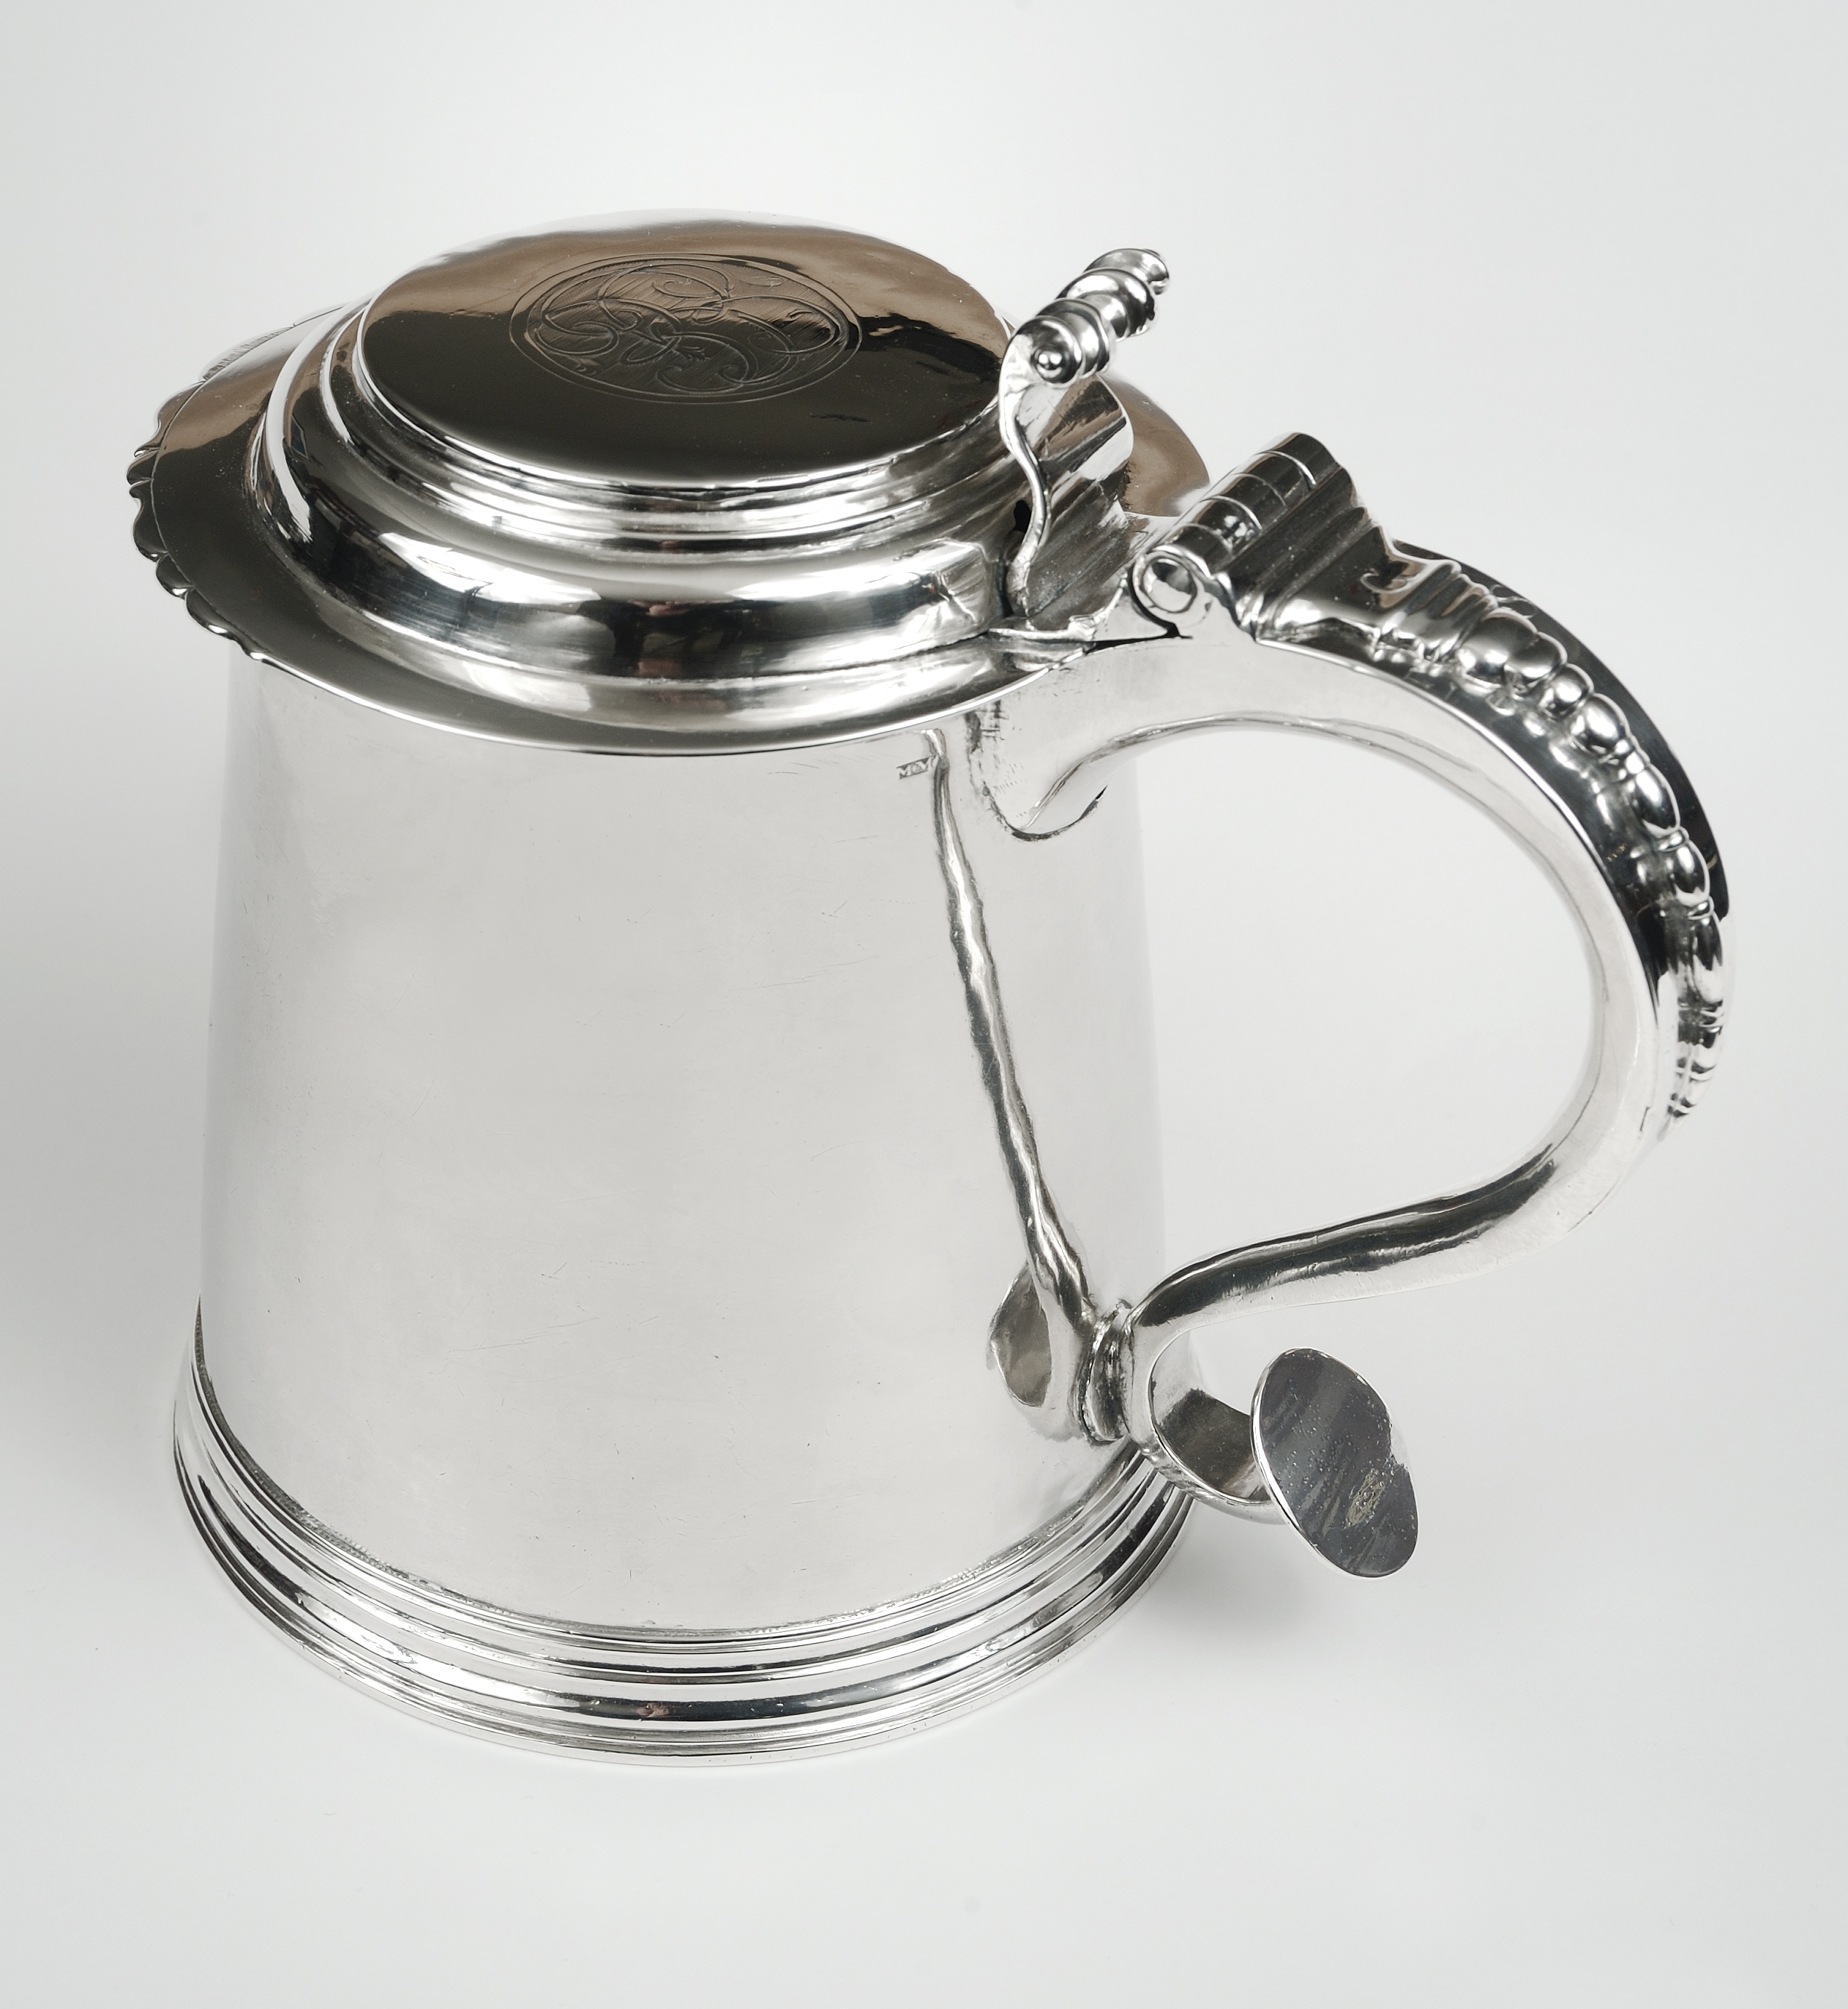 Tankard owned by Ennis Graham, ca. 1747-1763